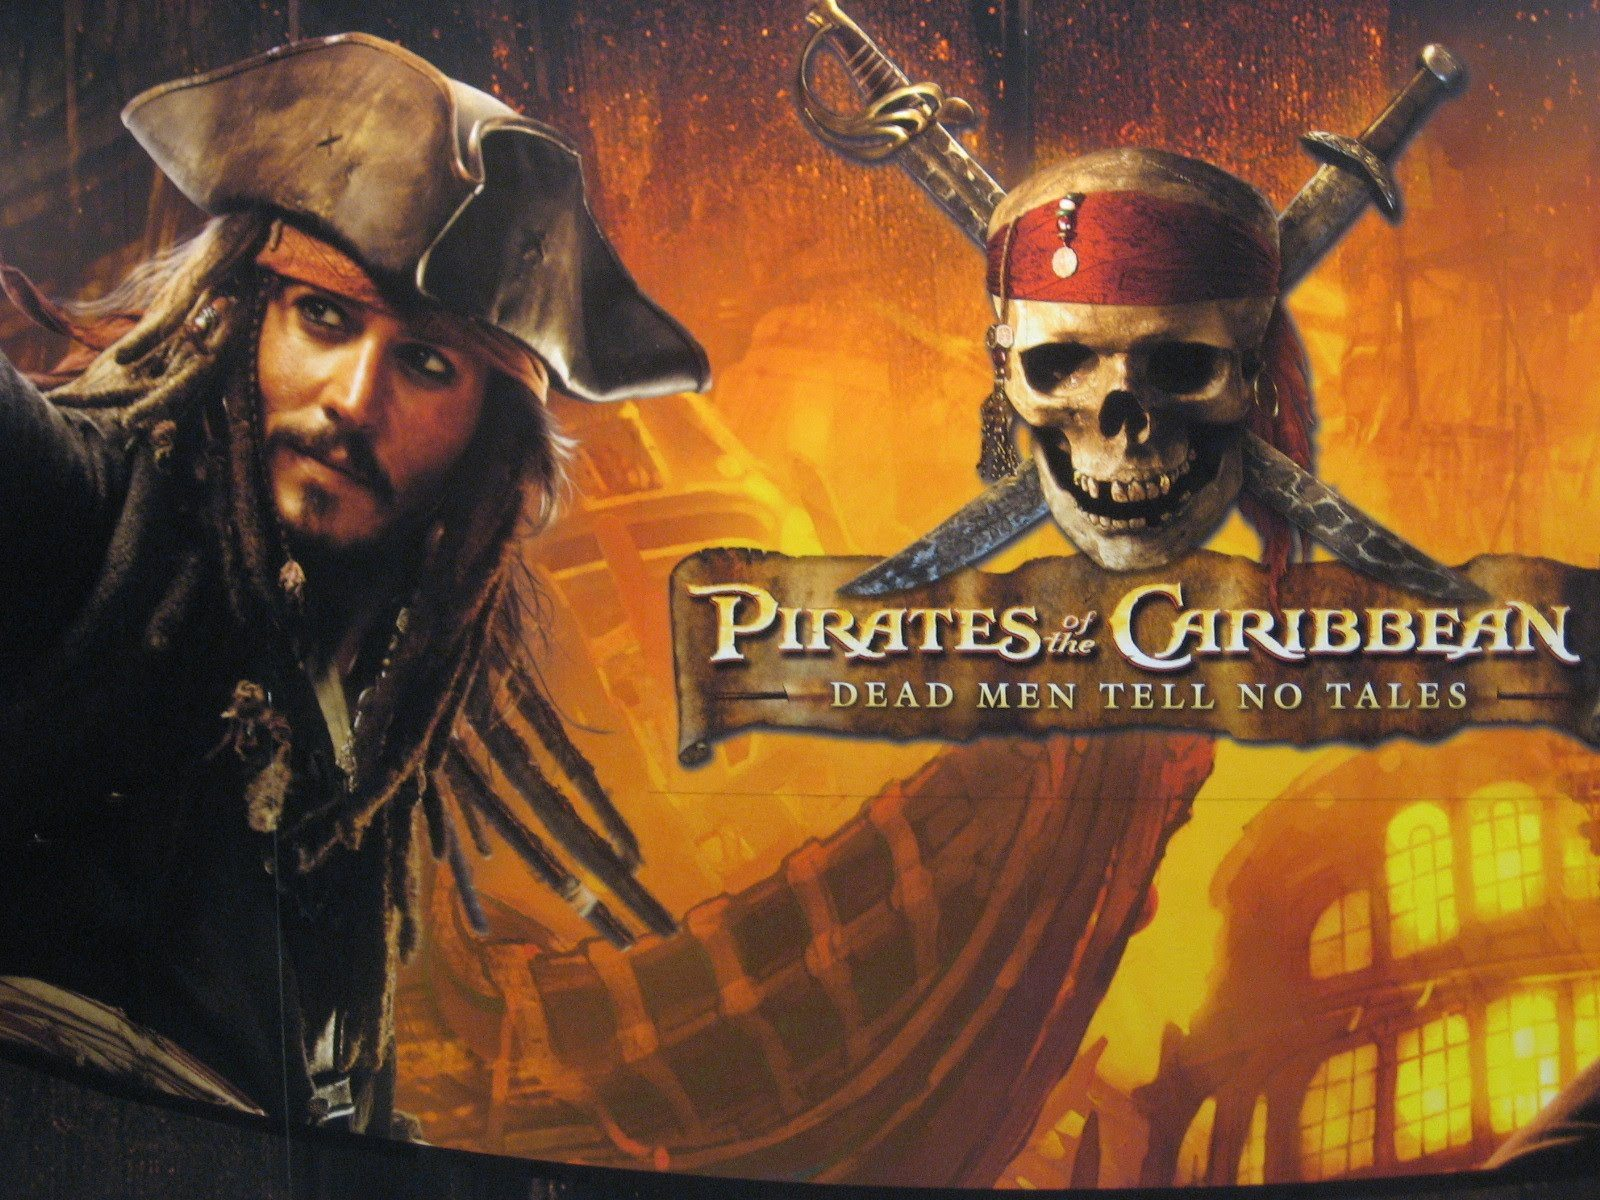 pirates-of-the-caribbean-5-dead-men-tell-no-tales-2016